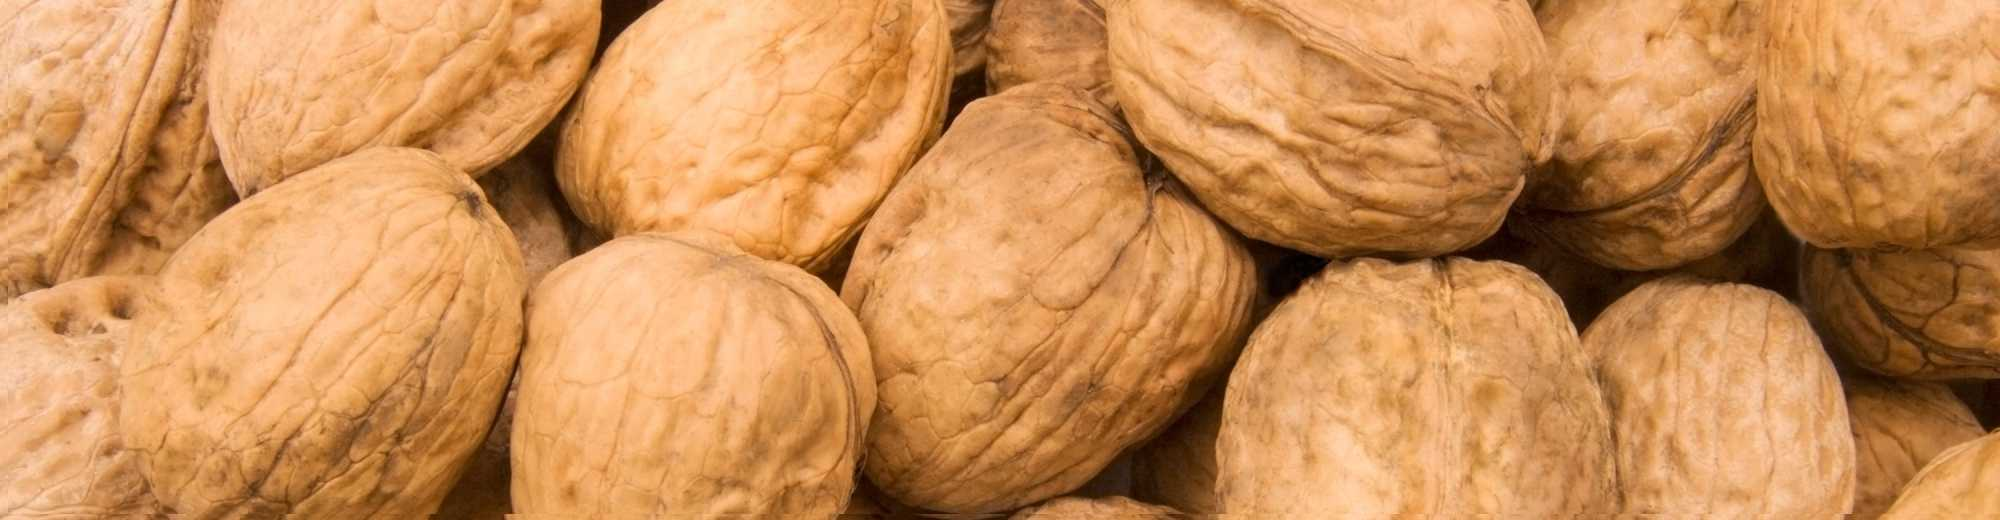 Walnut Varieties-from Chandlers to Waterloo